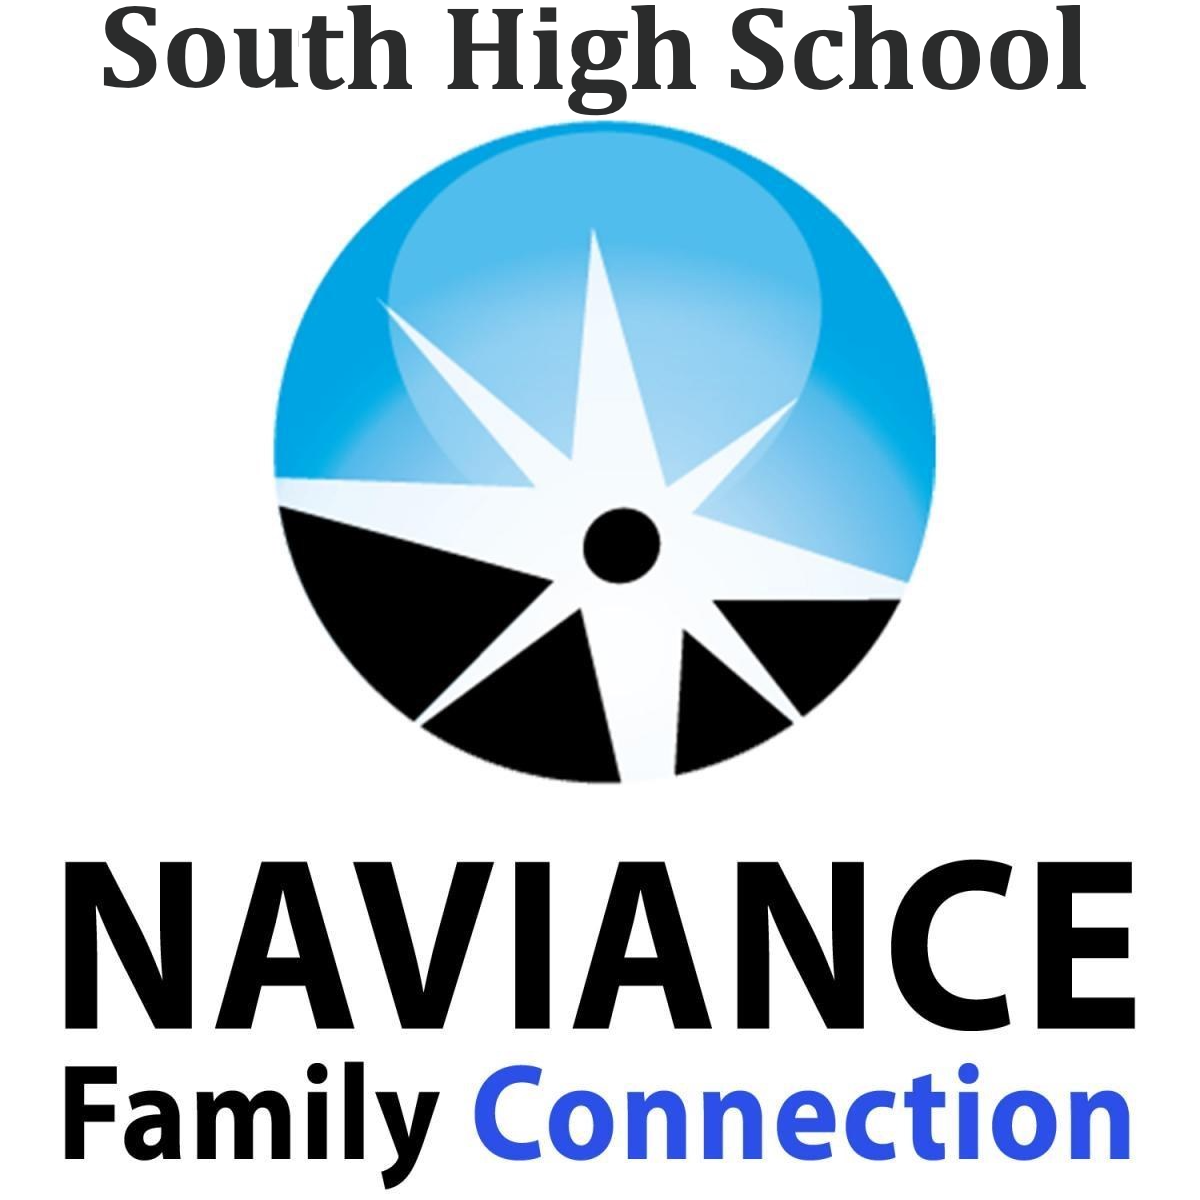 Image of South High Naviance